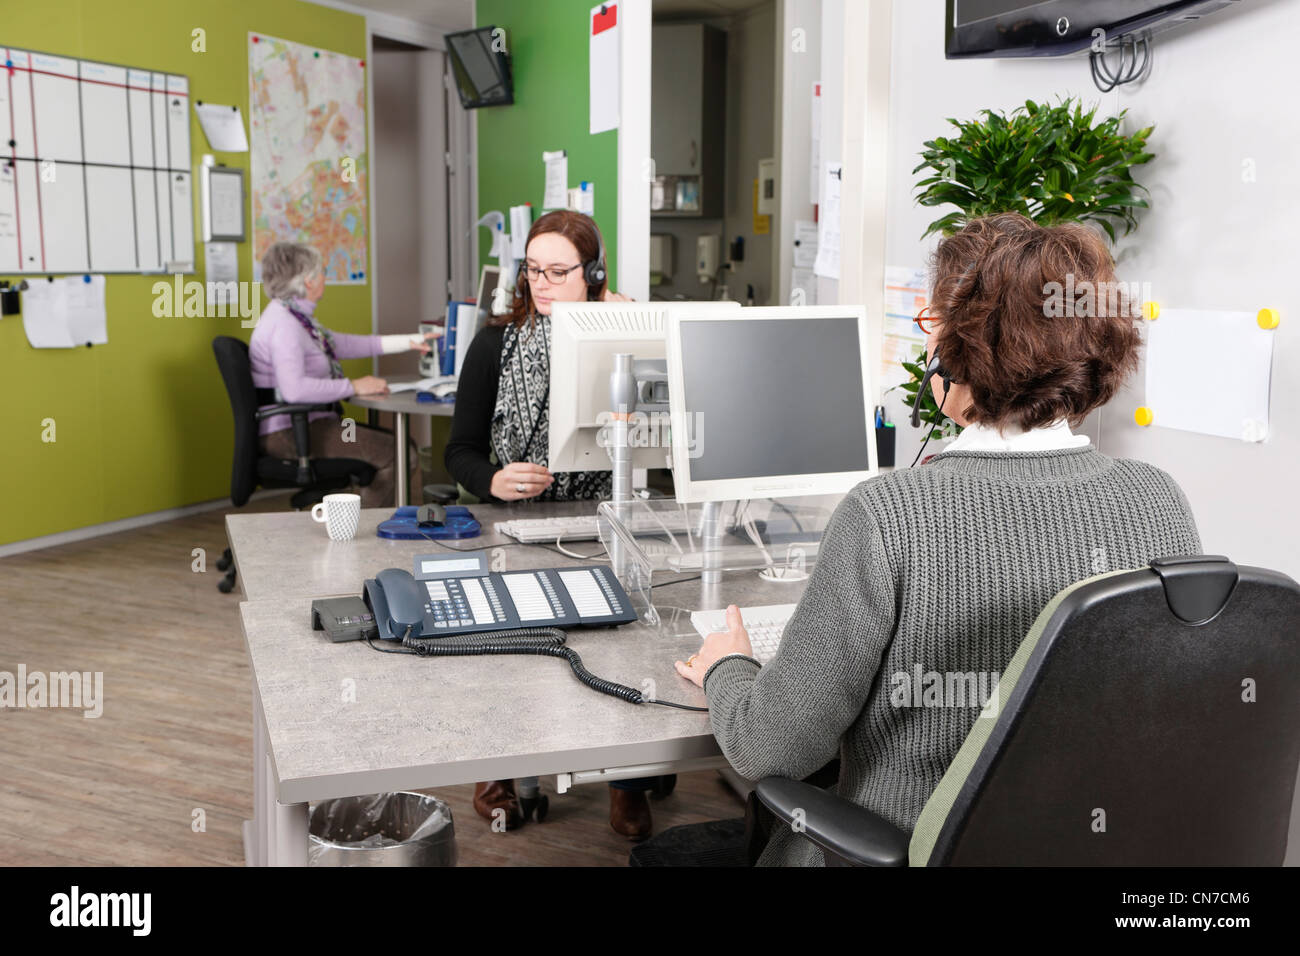 people working in a hospital's call center, answering patients questions over the phone - Stock Image